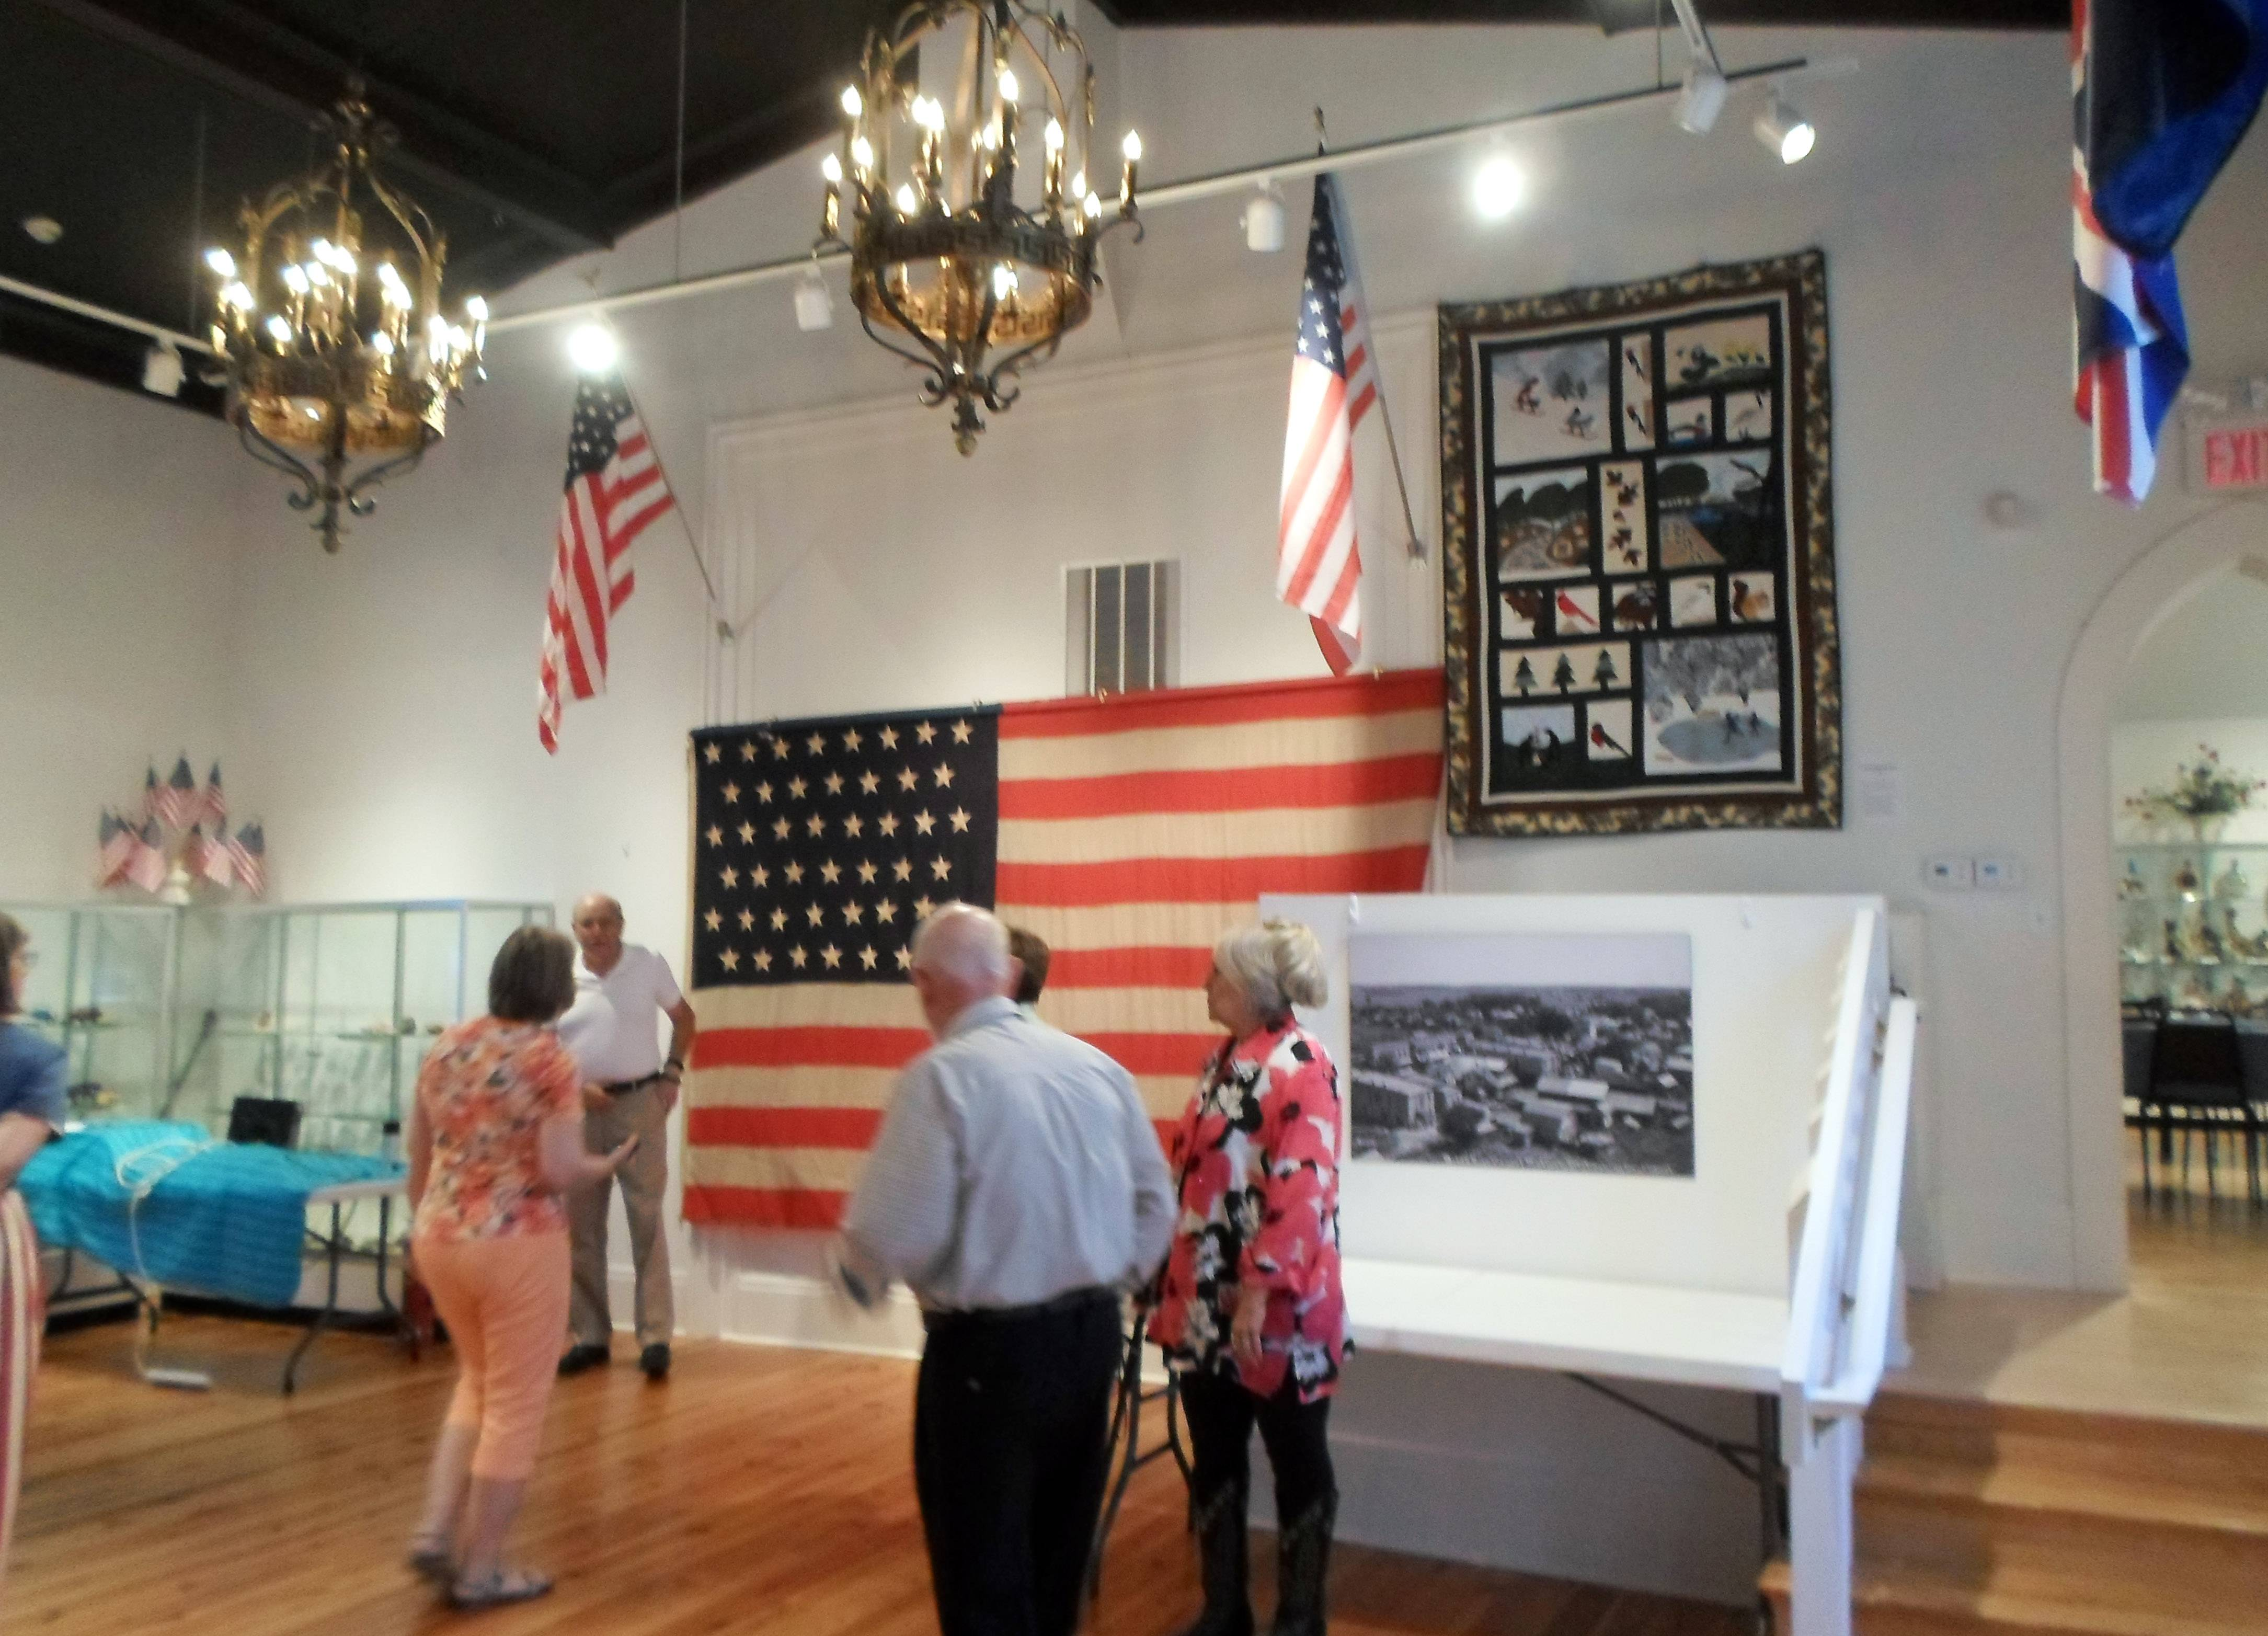 A large American flag is displayed at the Lakes Region Historical Society in Antioch.